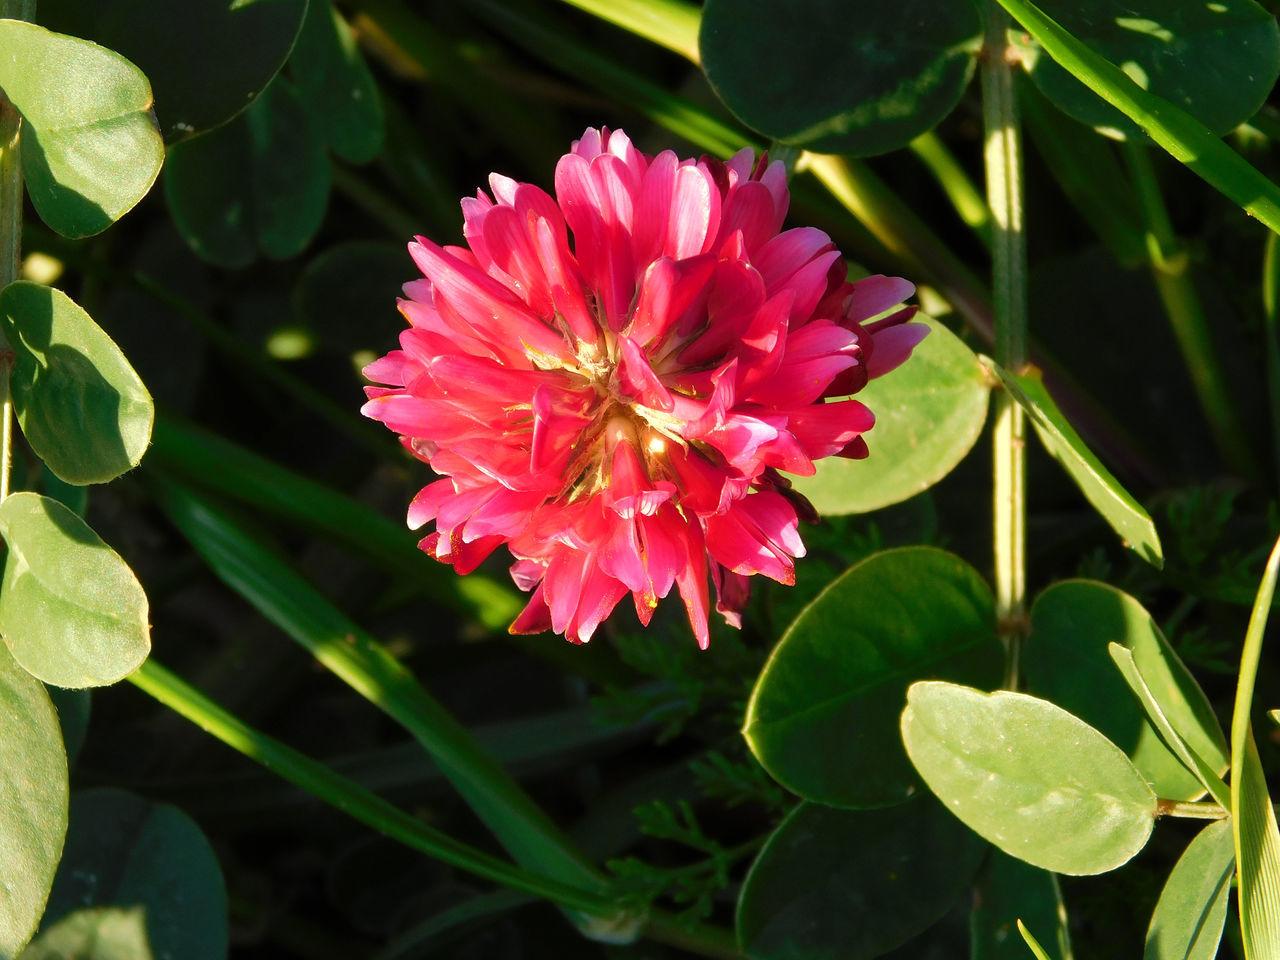 flower, petal, beauty in nature, growth, nature, flower head, freshness, fragility, plant, leaf, pink color, no people, blooming, outdoors, day, green color, close-up, zinnia